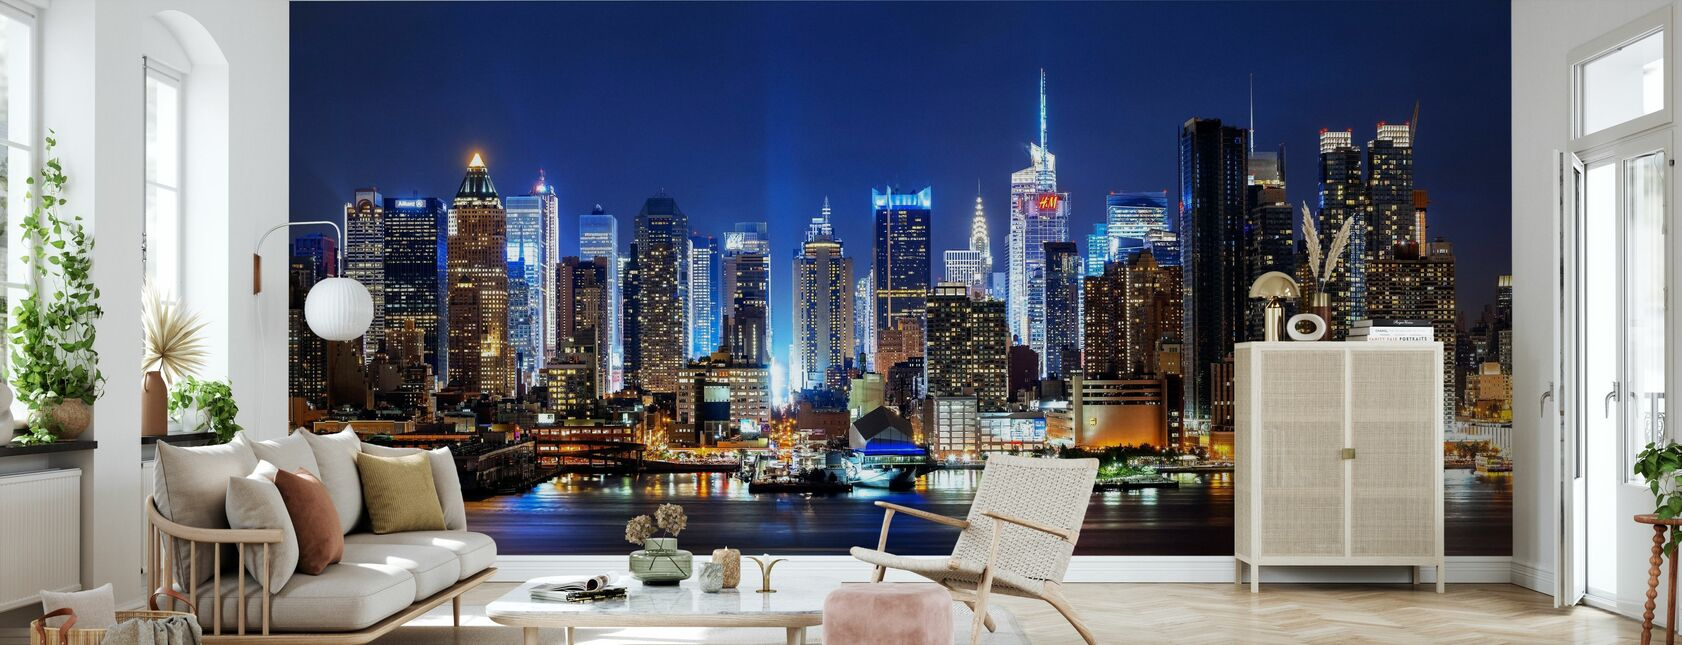 New York City Night Skyline - Behang - Woonkamer